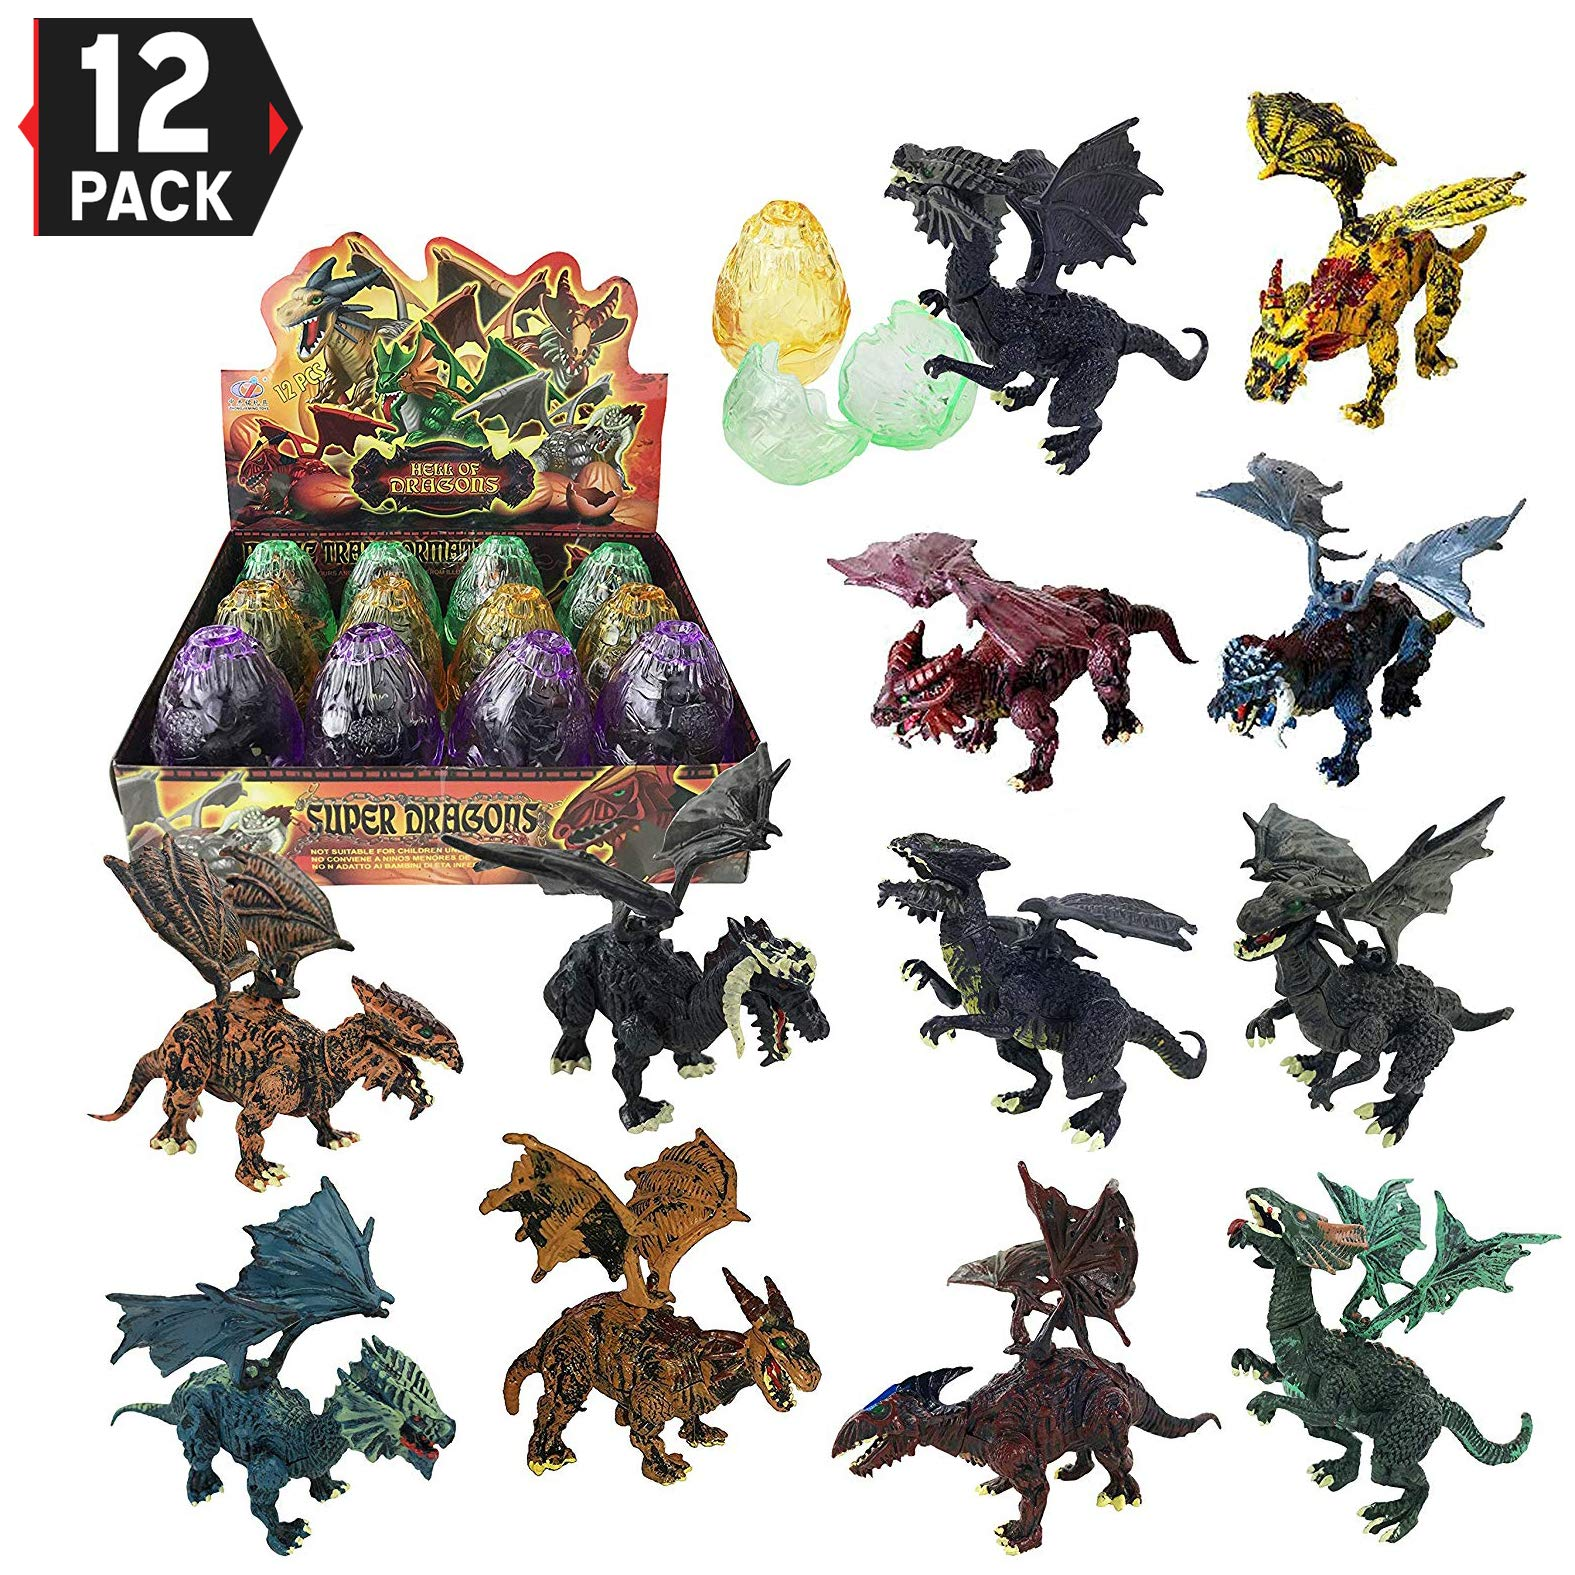 Liberty Imports [12 Pack] Deluxe 3D Dragon Figures Realistic Dragon Figurine Puzzles in Hatching Eggs for Kids Toy Party Favors (5-Inch)